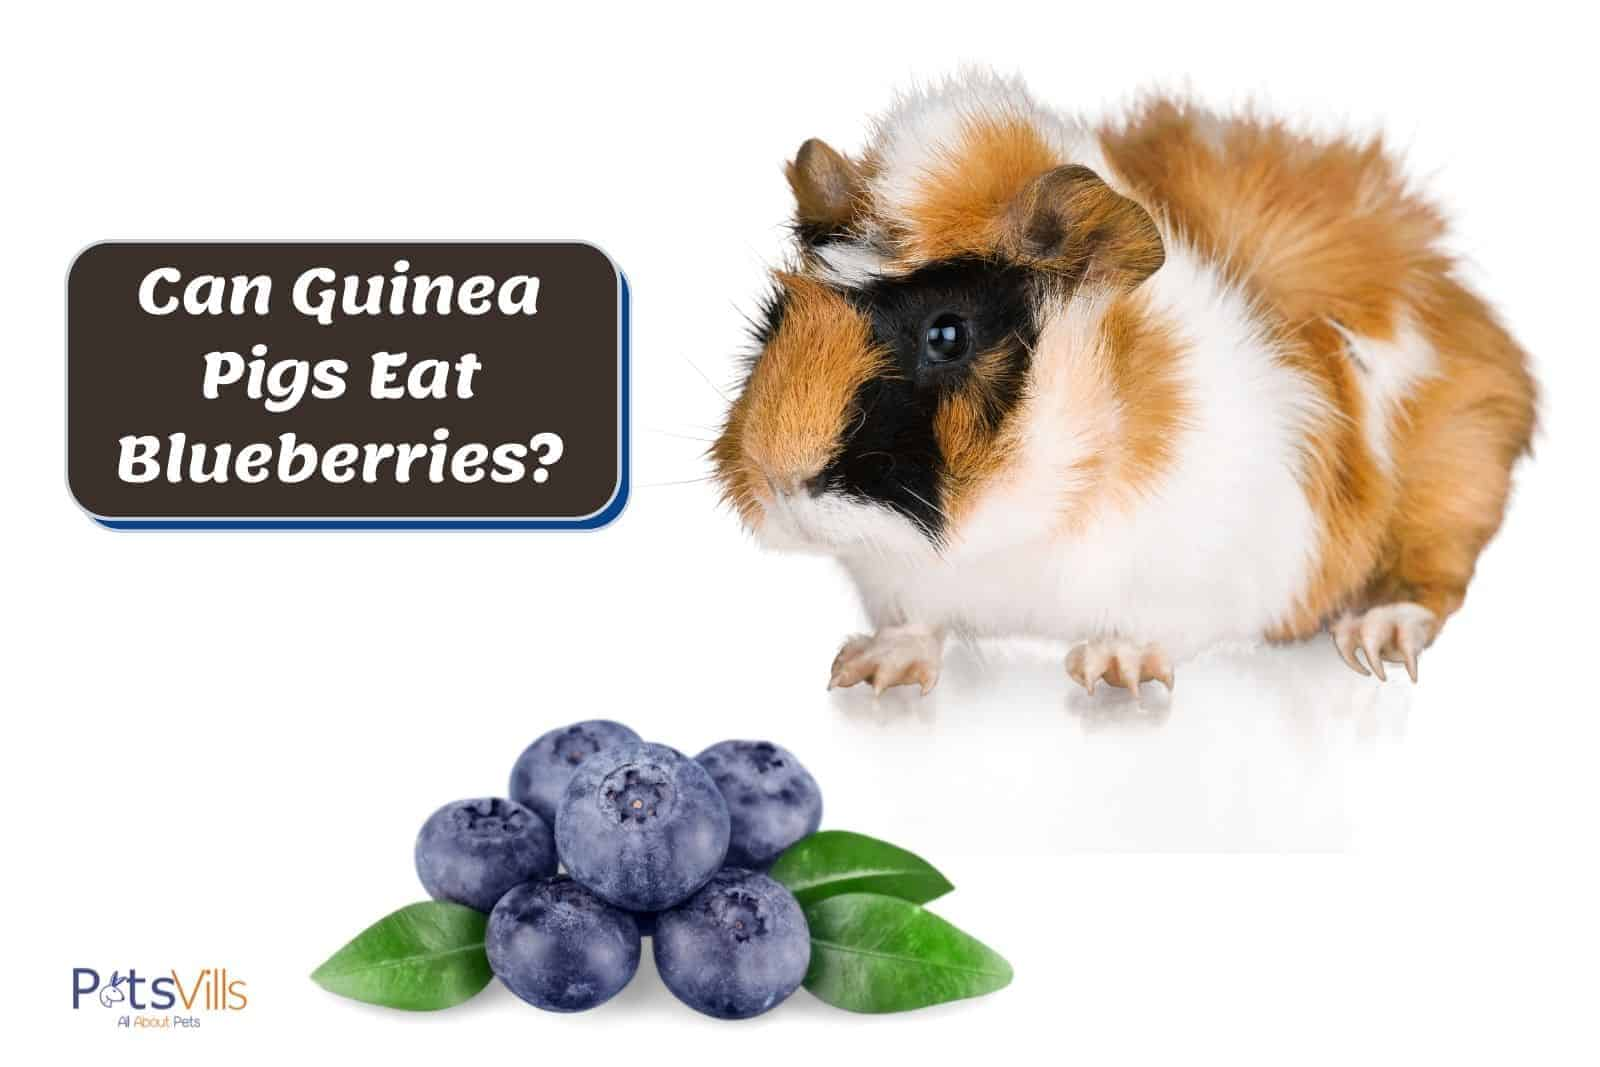 guinea pig in front of blueberries: can guinea pigs eat blueberries?